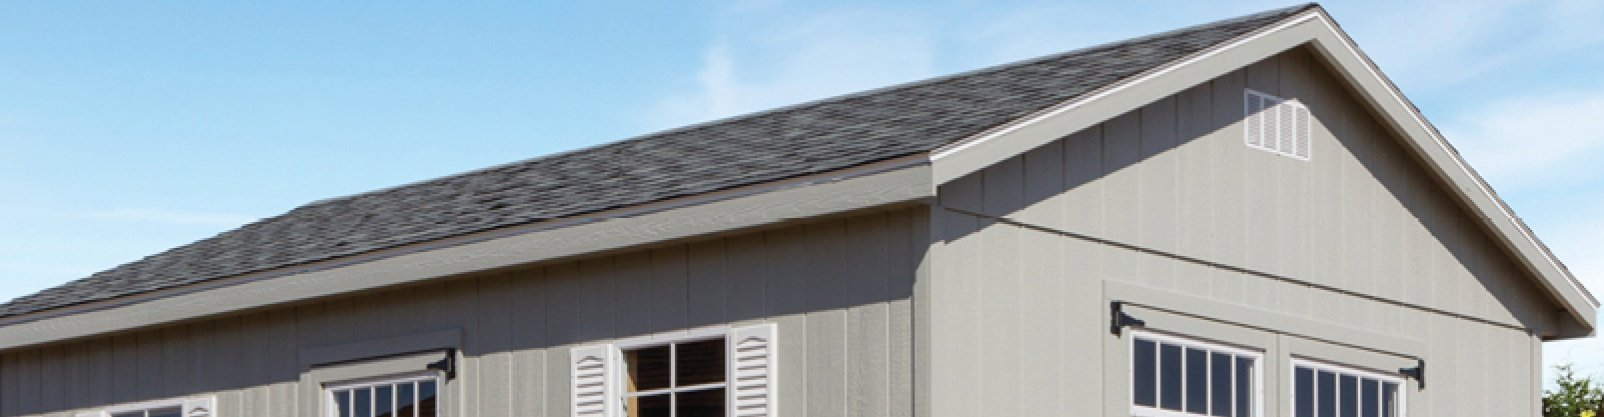 Ranch Roofline: Our Most Popular Shed and Garage Style